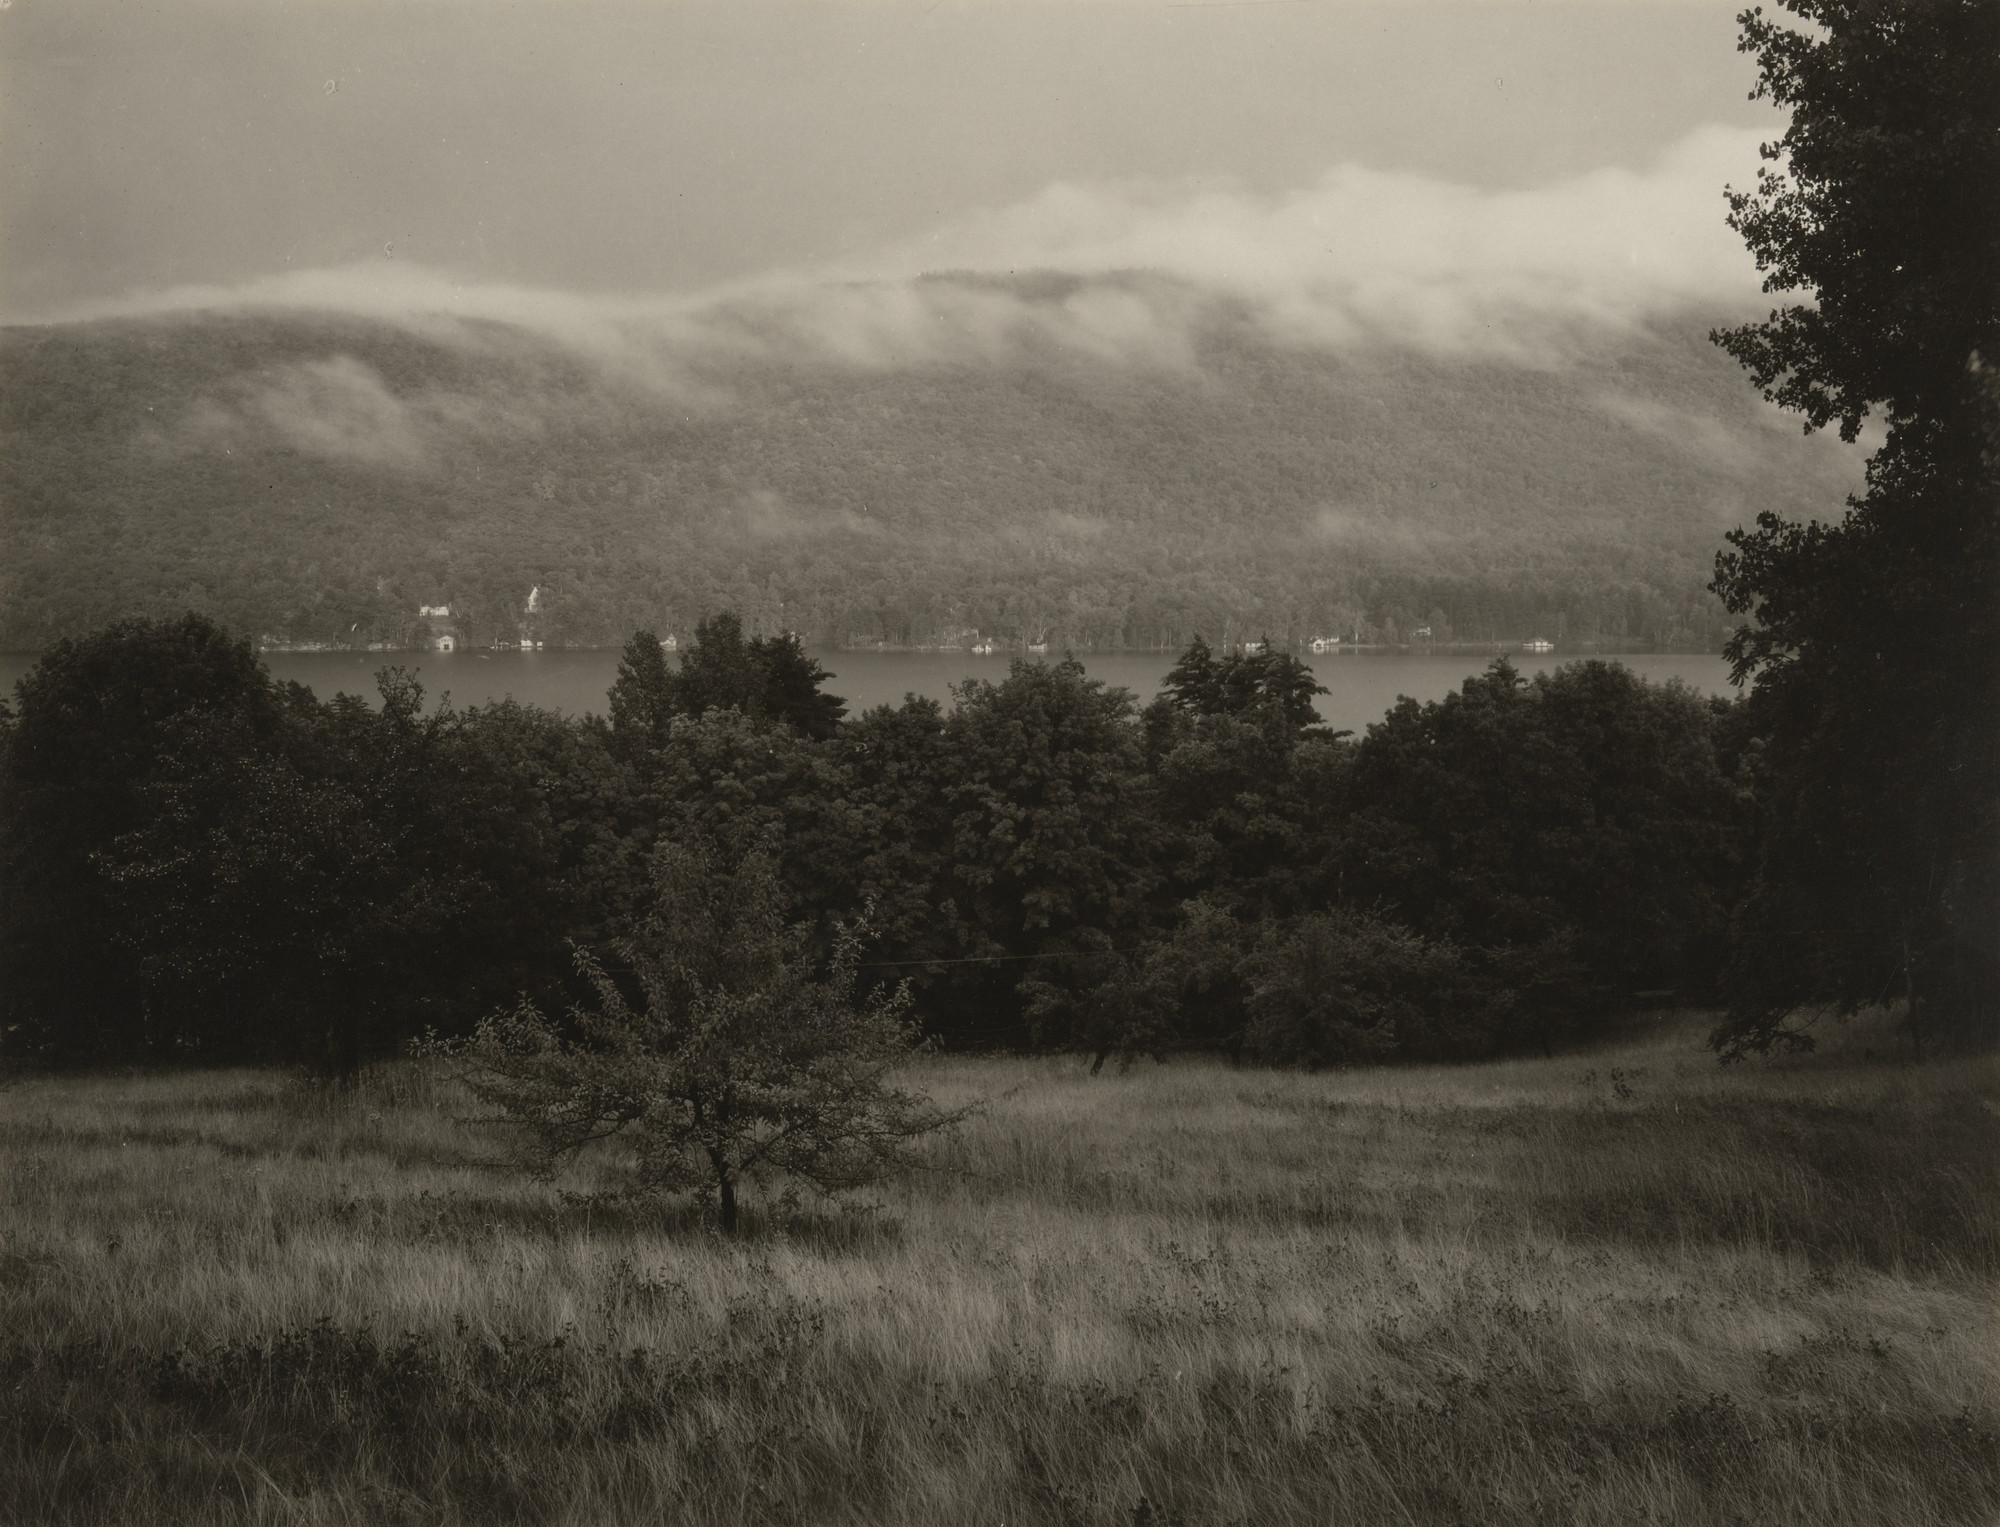 Alfred Stieglitz. Lake George from the Hill. 1932